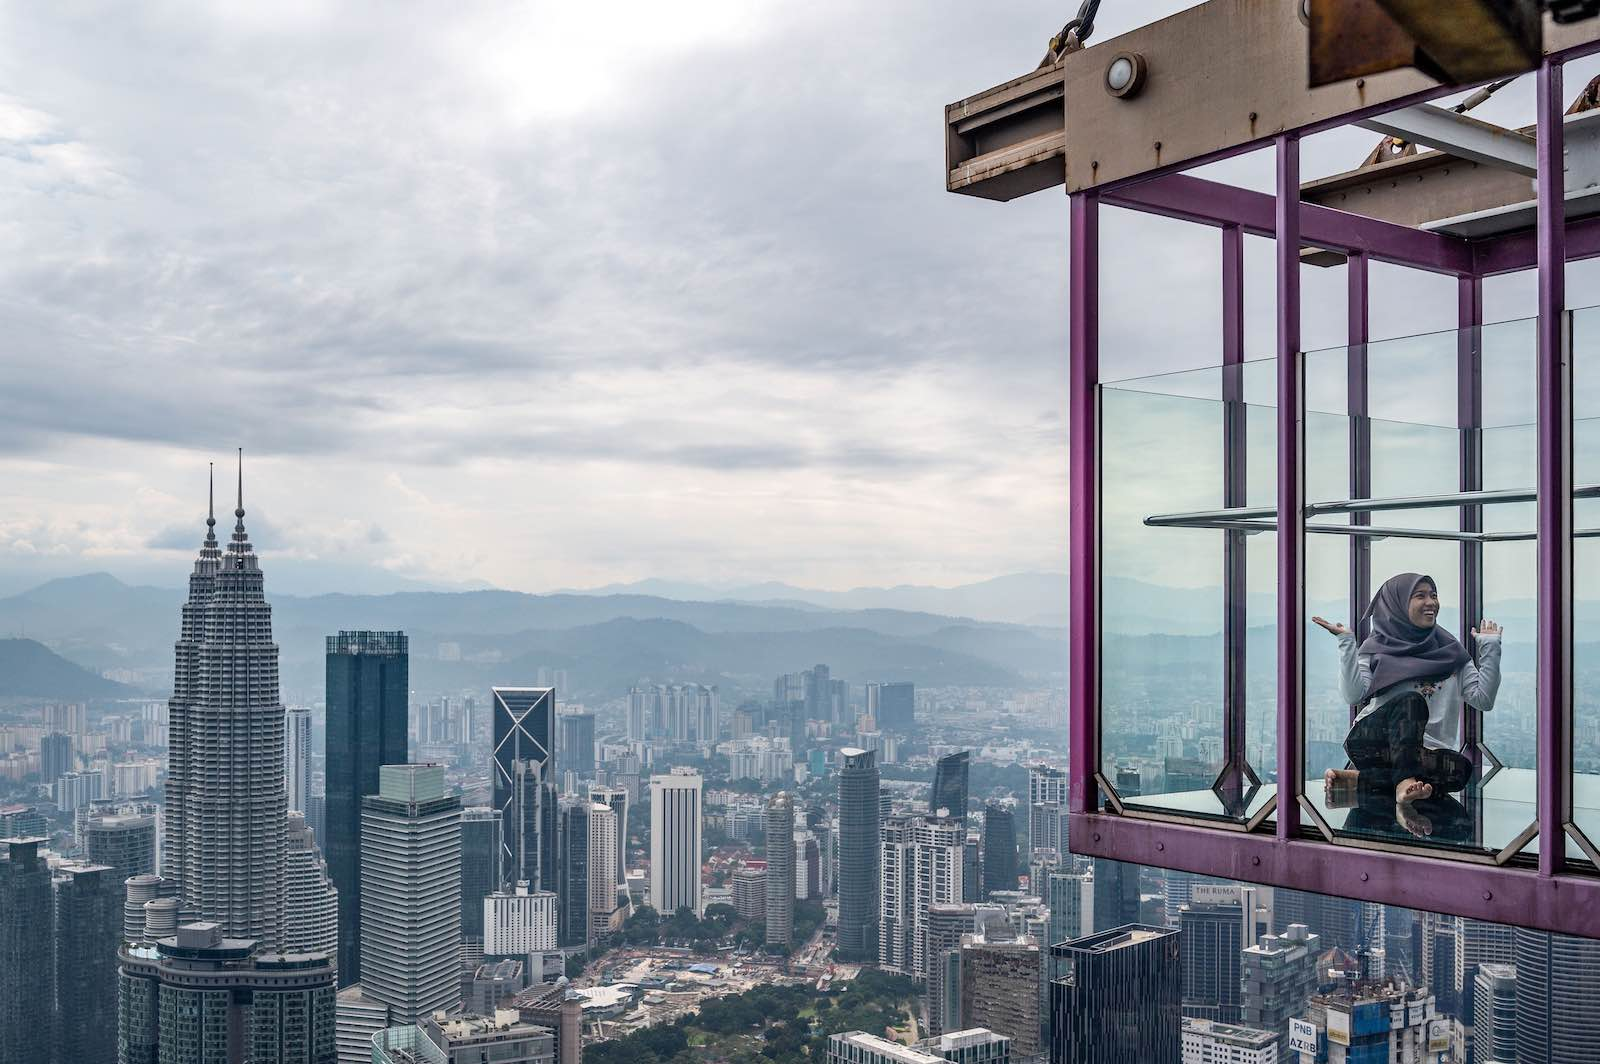 The view from Sky Box at KL Tower in Kuala Lumpur in July 2020 (Mohd Rasfan/AFP via Getty Images)